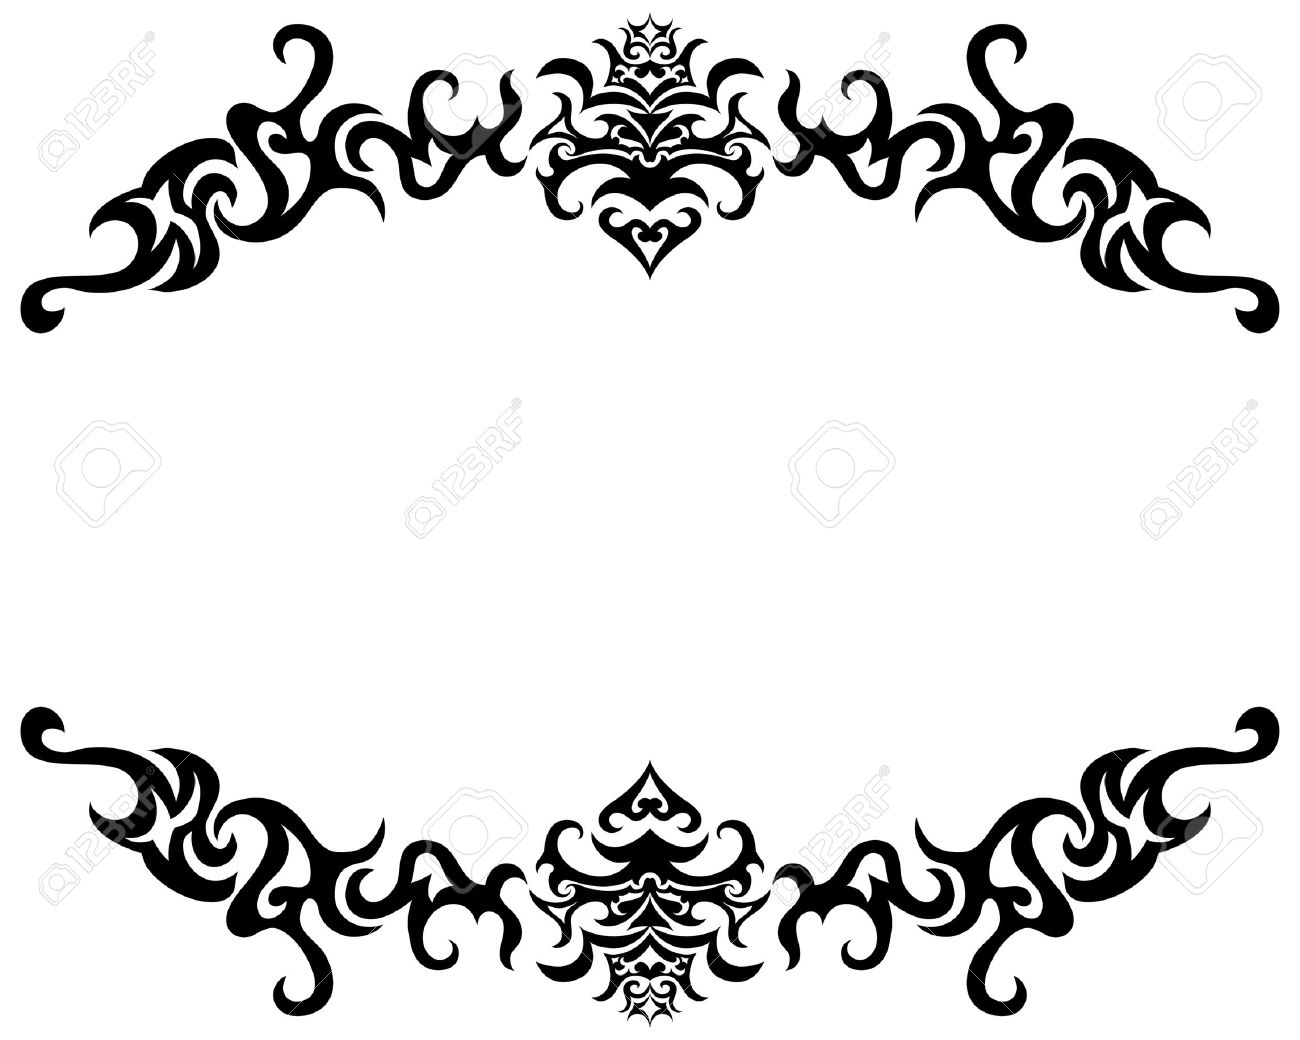 Abstract Gothic Vector Frame For Design Use Stock